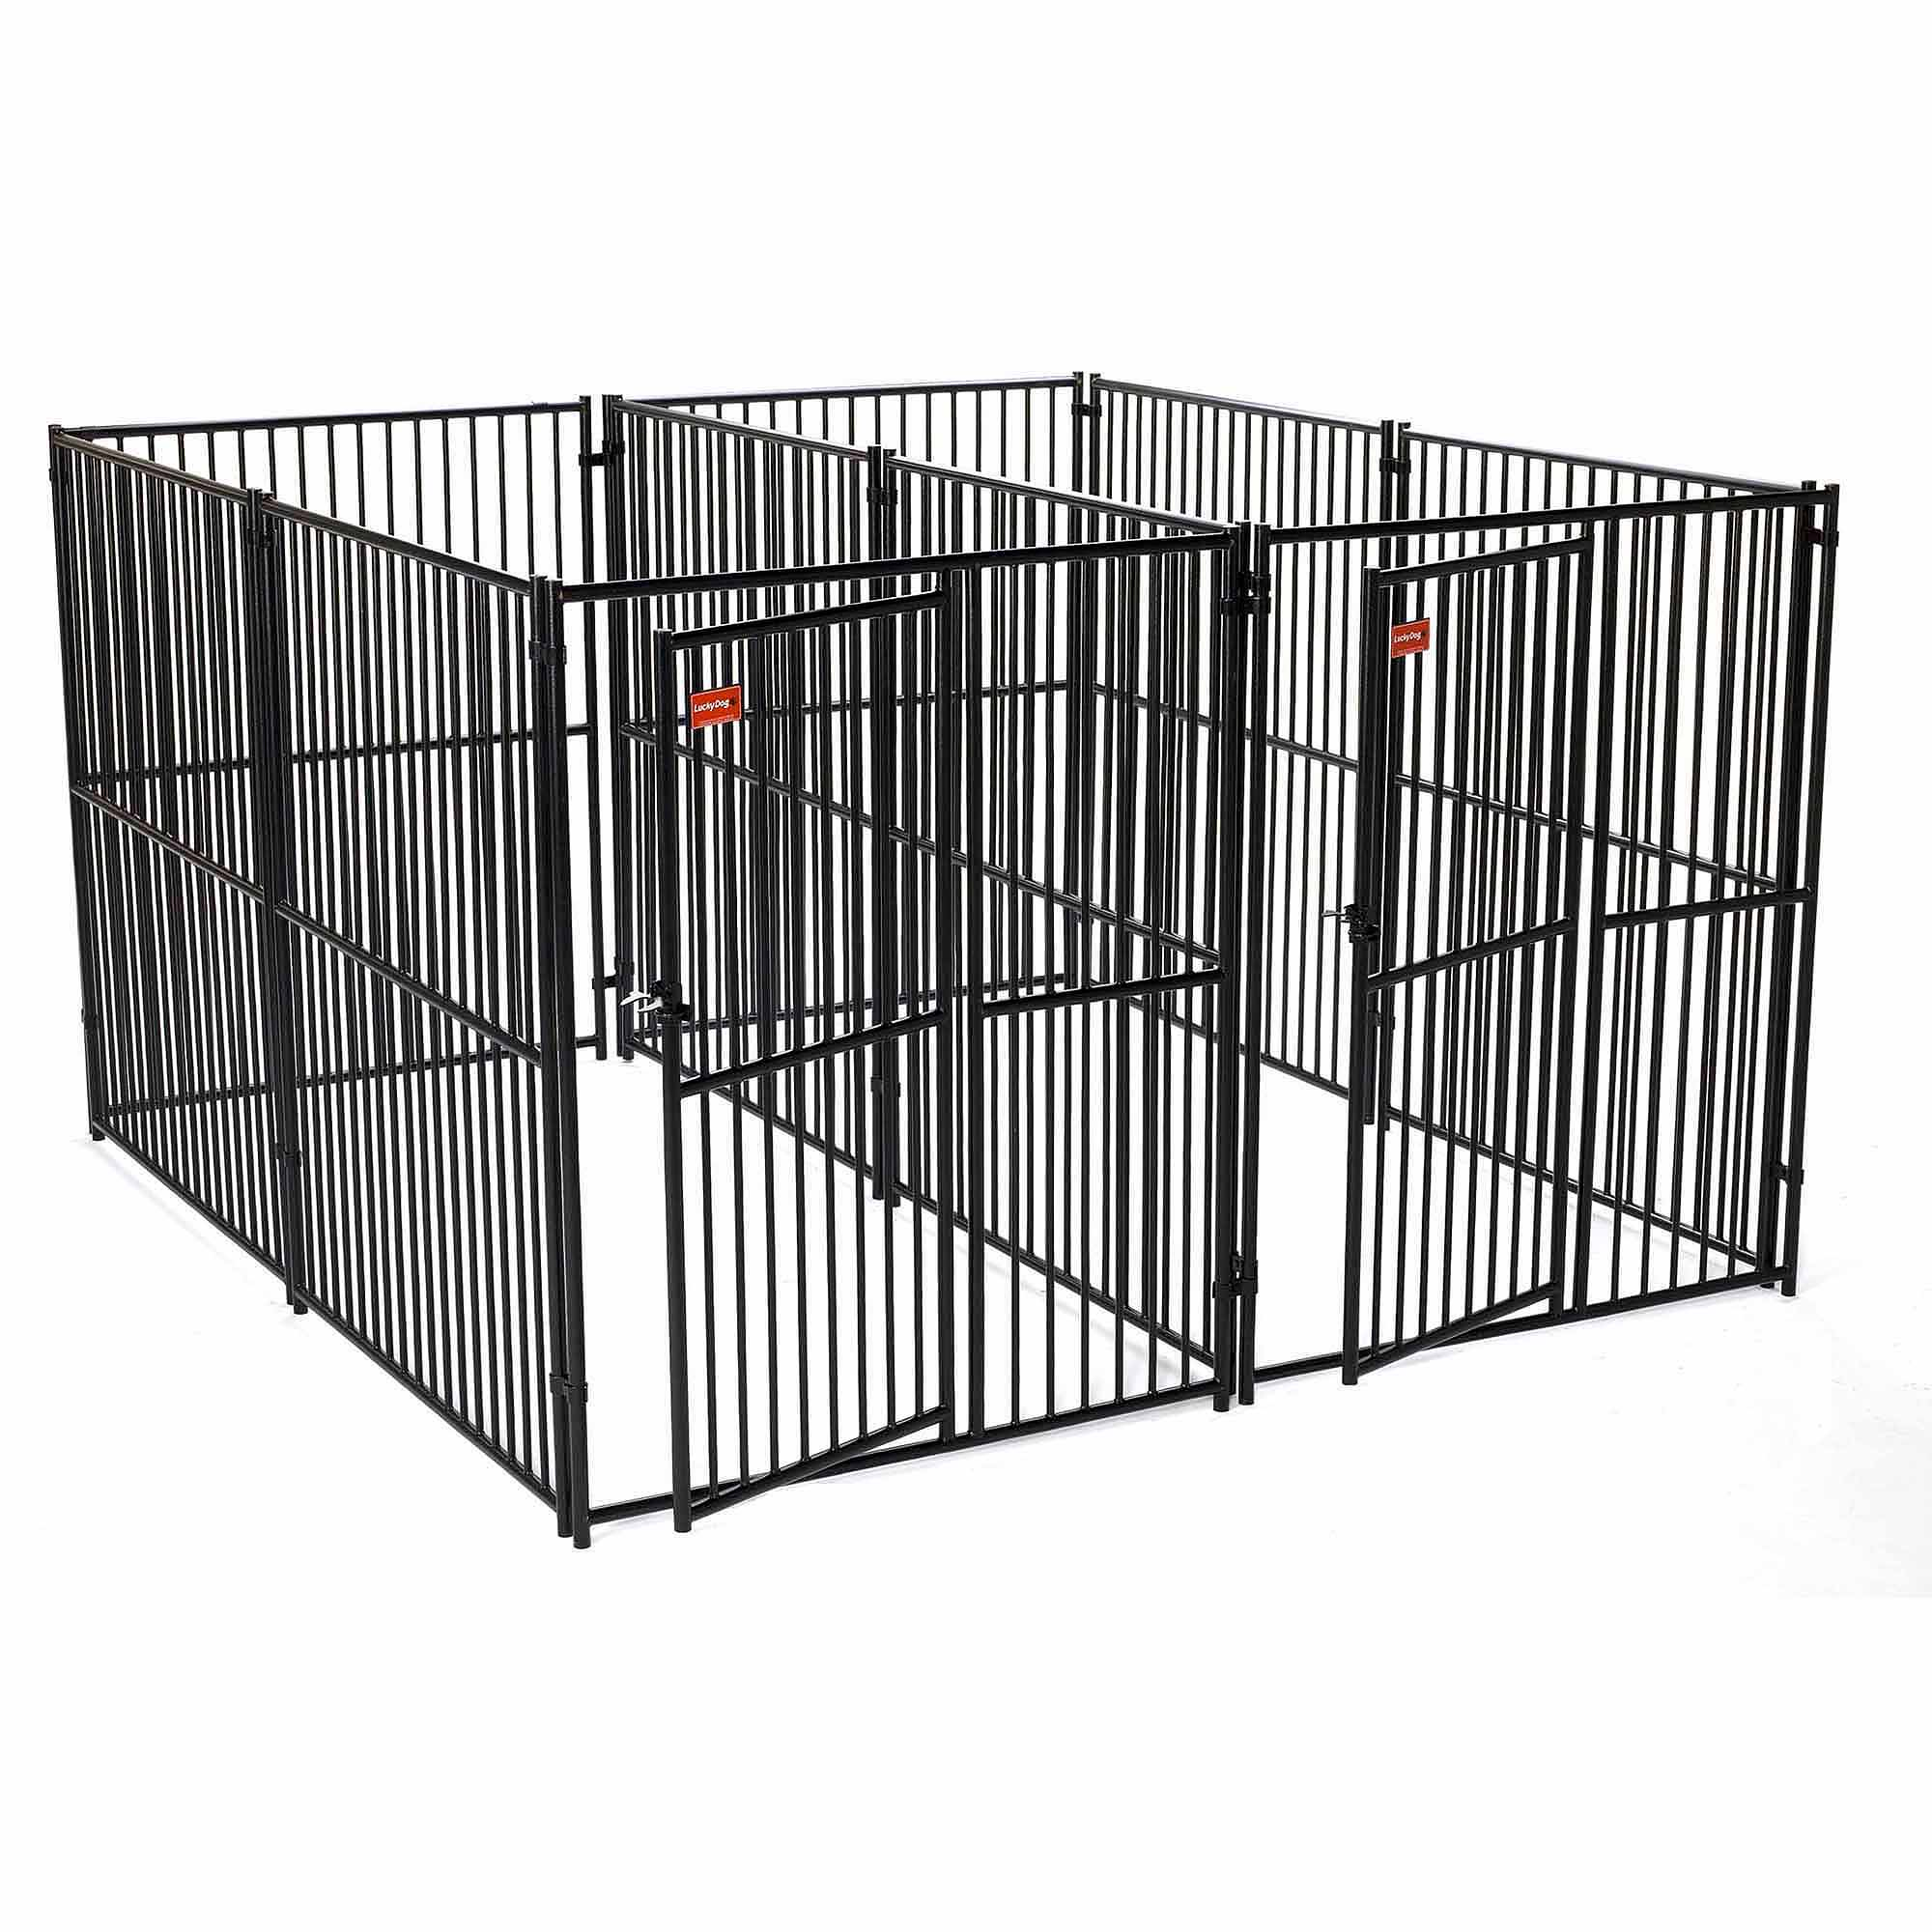 Lucky Dog European Style 5' x 10' 2-Run Kennel with Common Wall